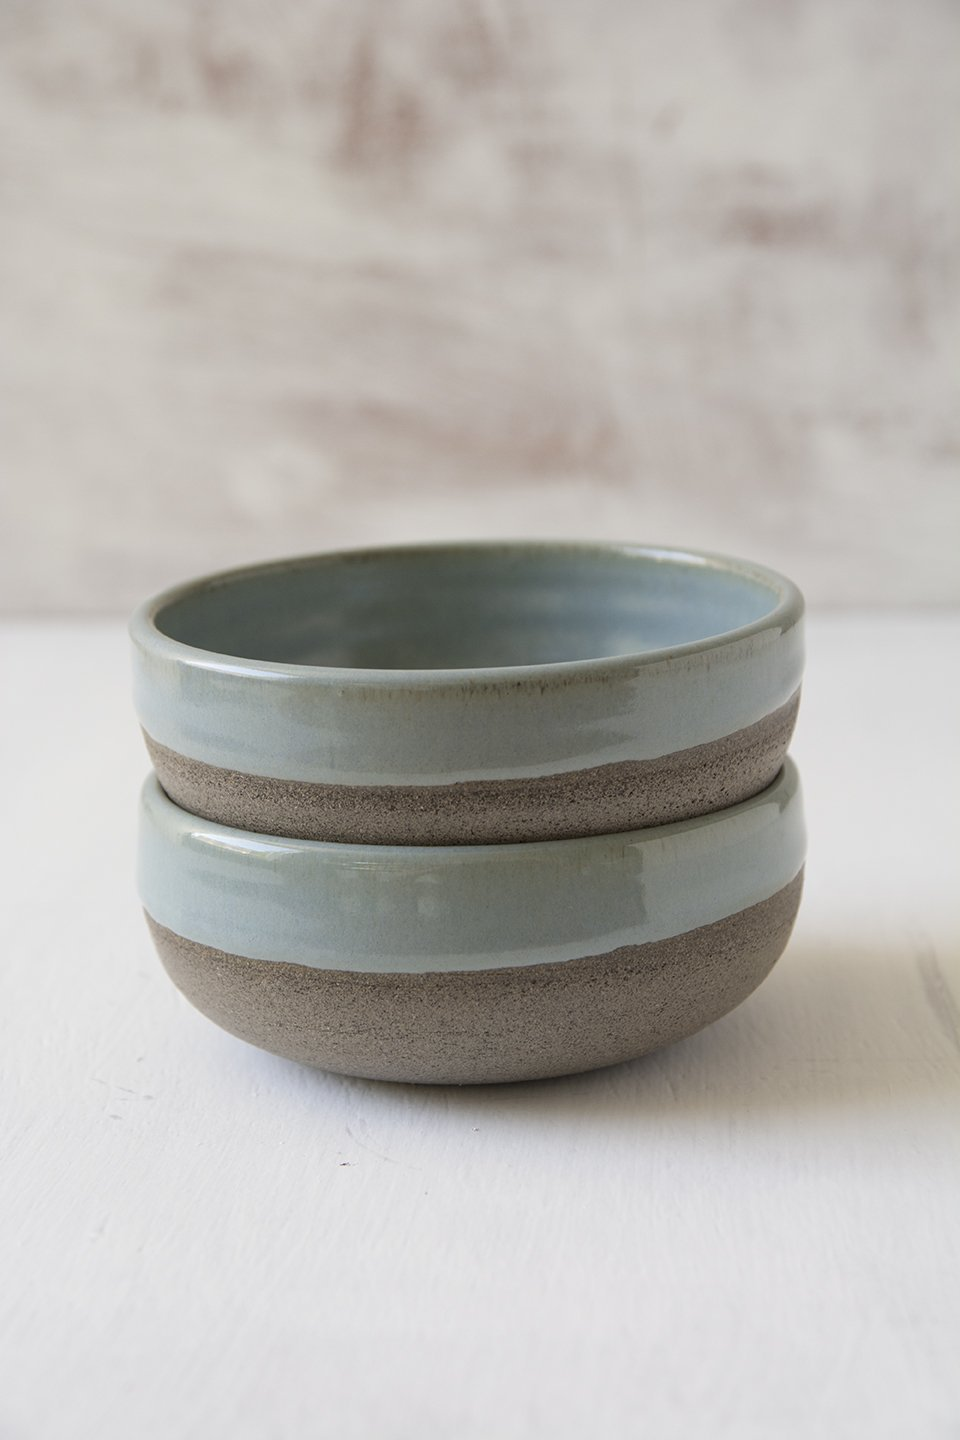 Light Blue Small Pottery Bowls - Mad About Pottery - Bowl